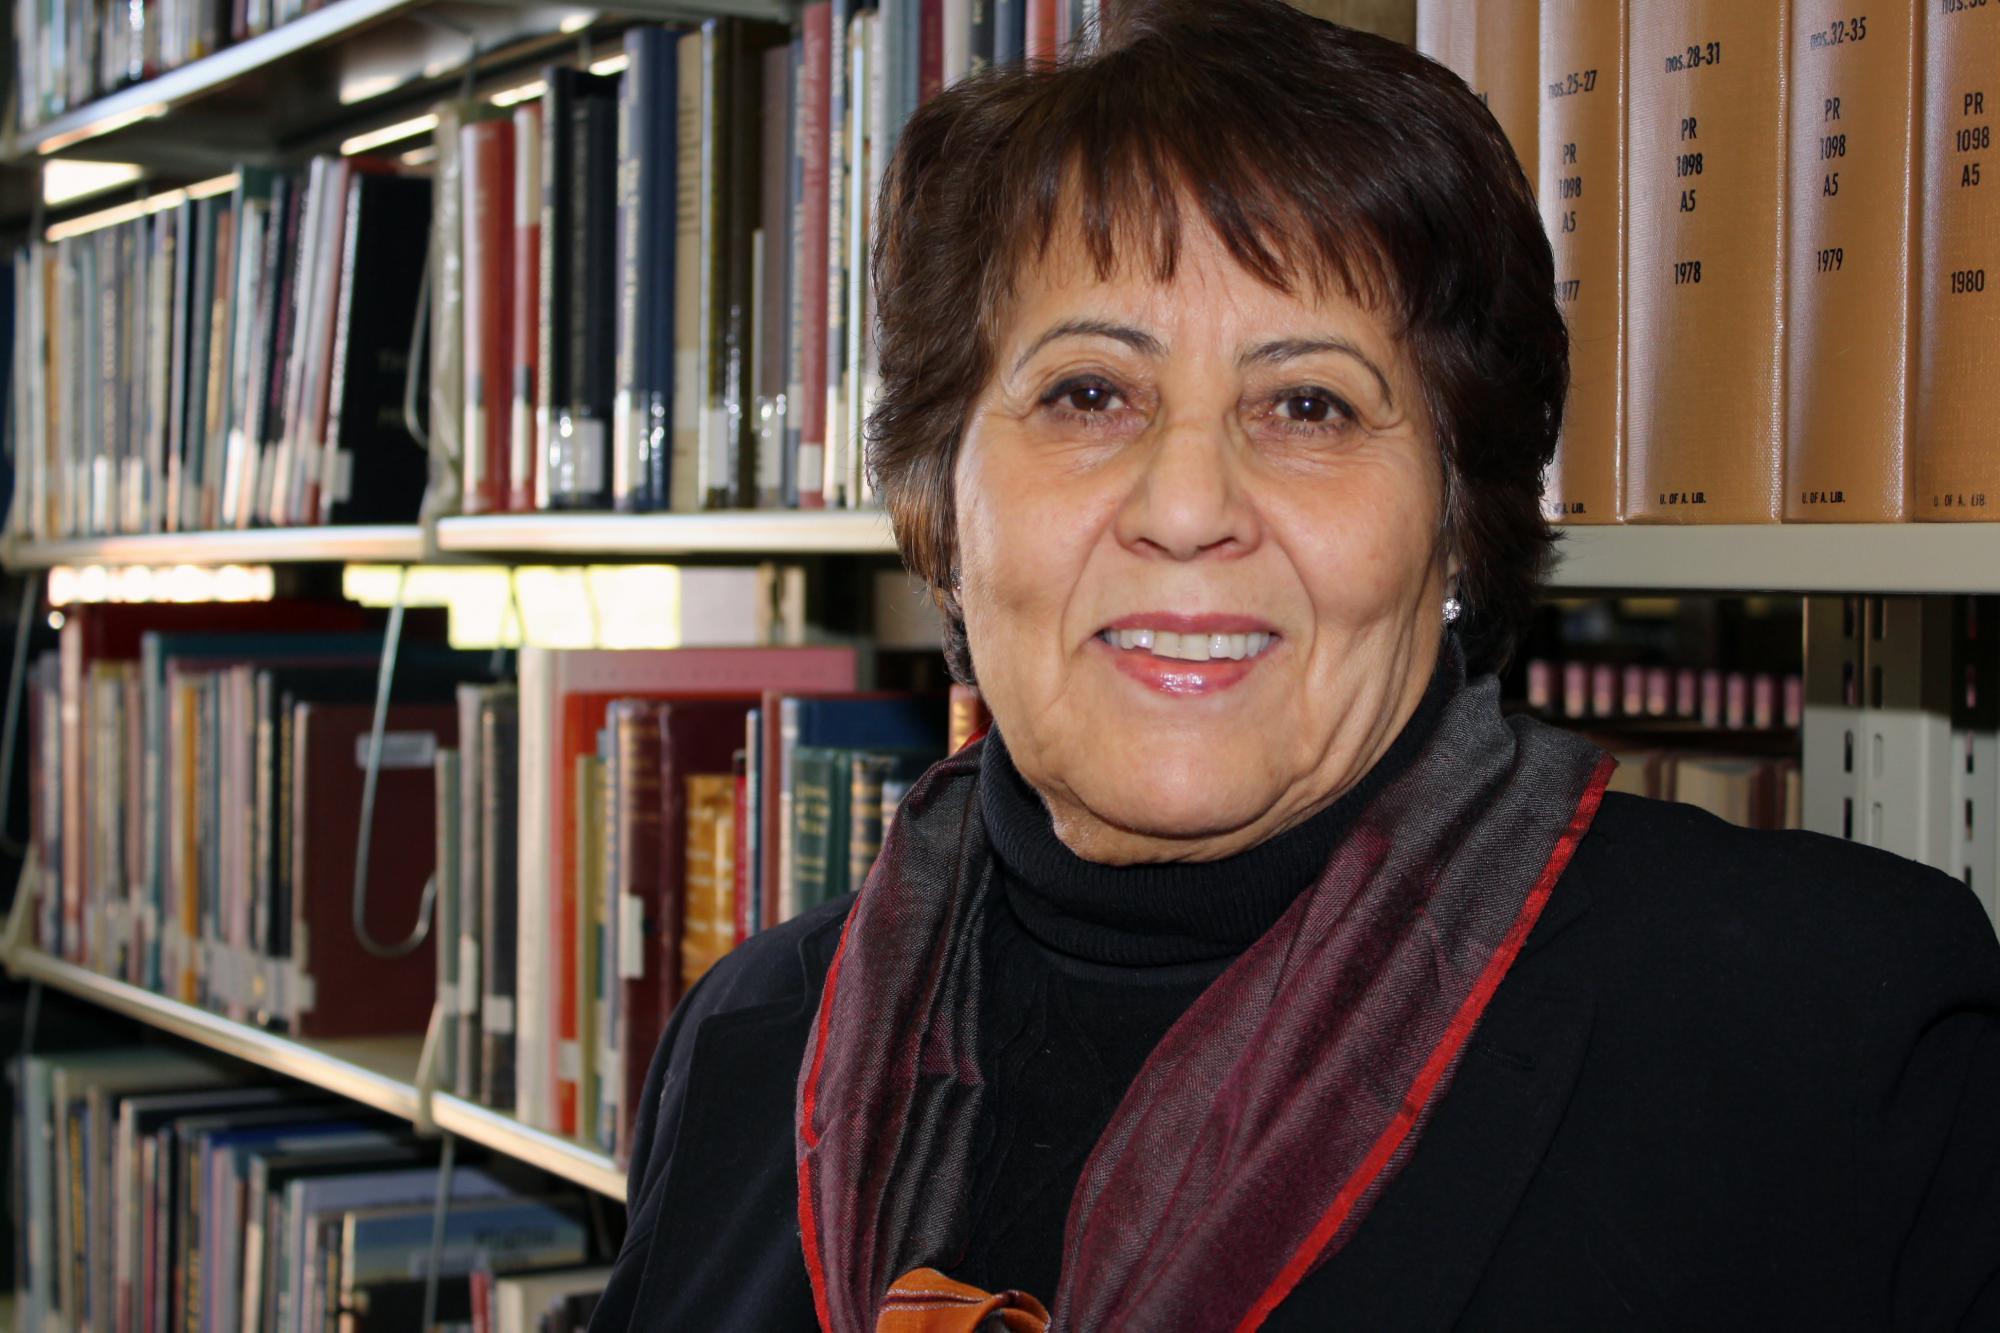 Atifa R. Rawan, a UA librarian who was born and raised in Afghanistan, started helping academic libraries in her native country in April 2001. Rawan said her work would not be possible without the visionary support of UA Libraries Dean Carla Stoffle and h